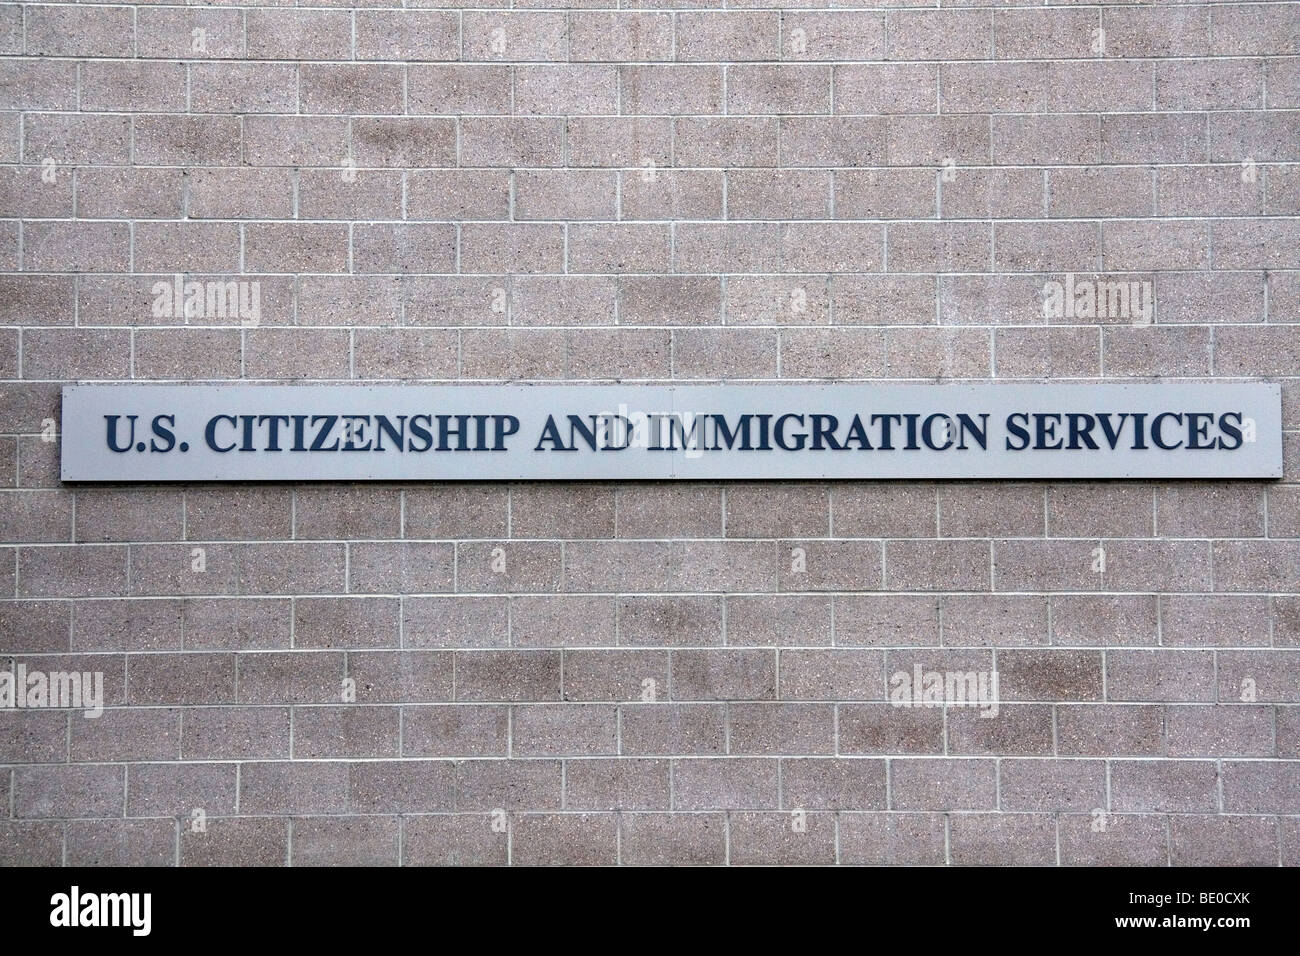 U.S. Citizenship and Immigration Services building in Idaho, USA. - Stock Image